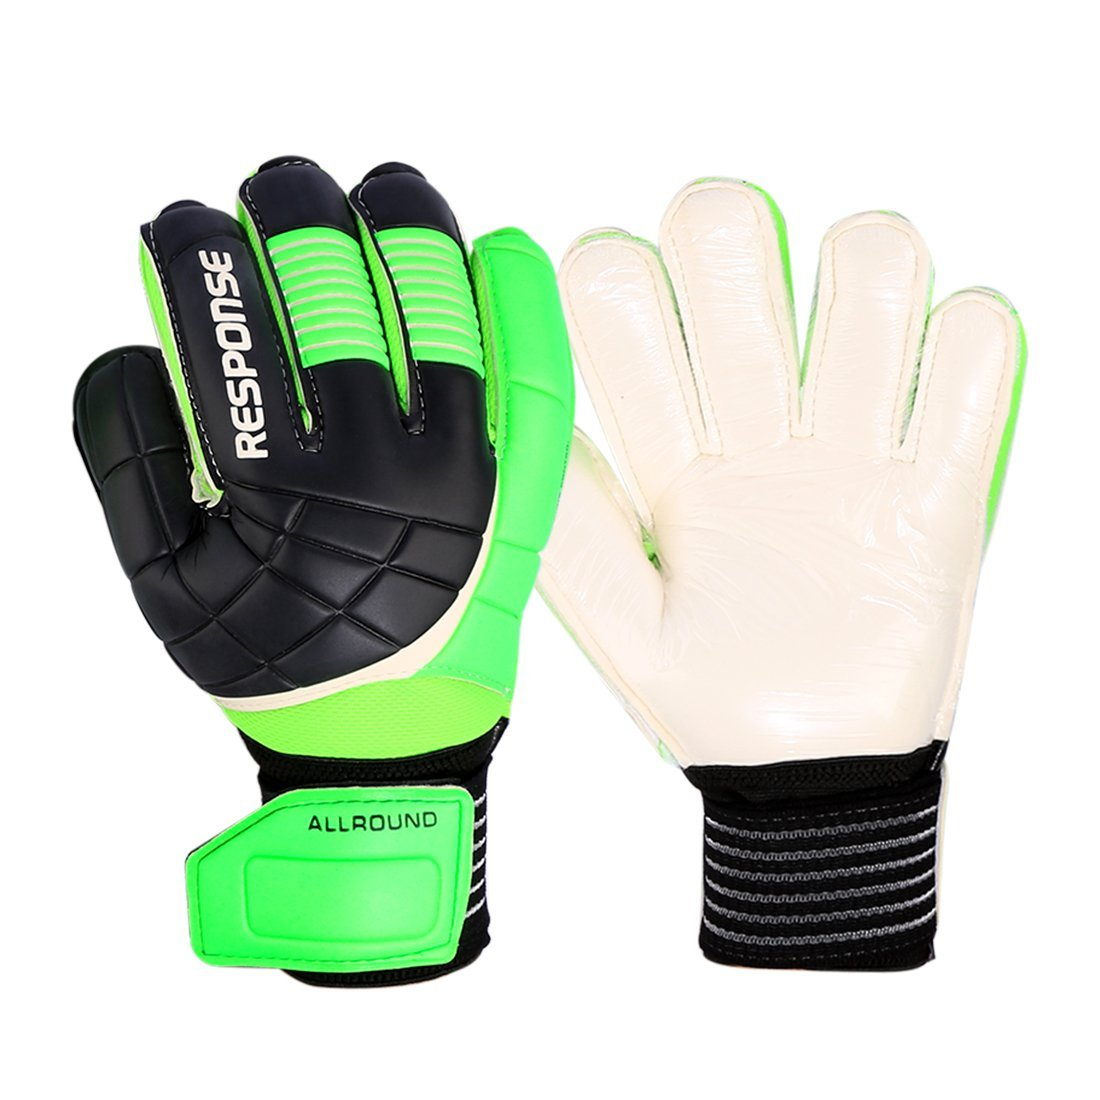 75eb7df2879 Get Quotations · Professional Soccer Goalkeeper Gloves, RuiyiF Latex Finger  Protection Goalie Gloves for Adult Juniors